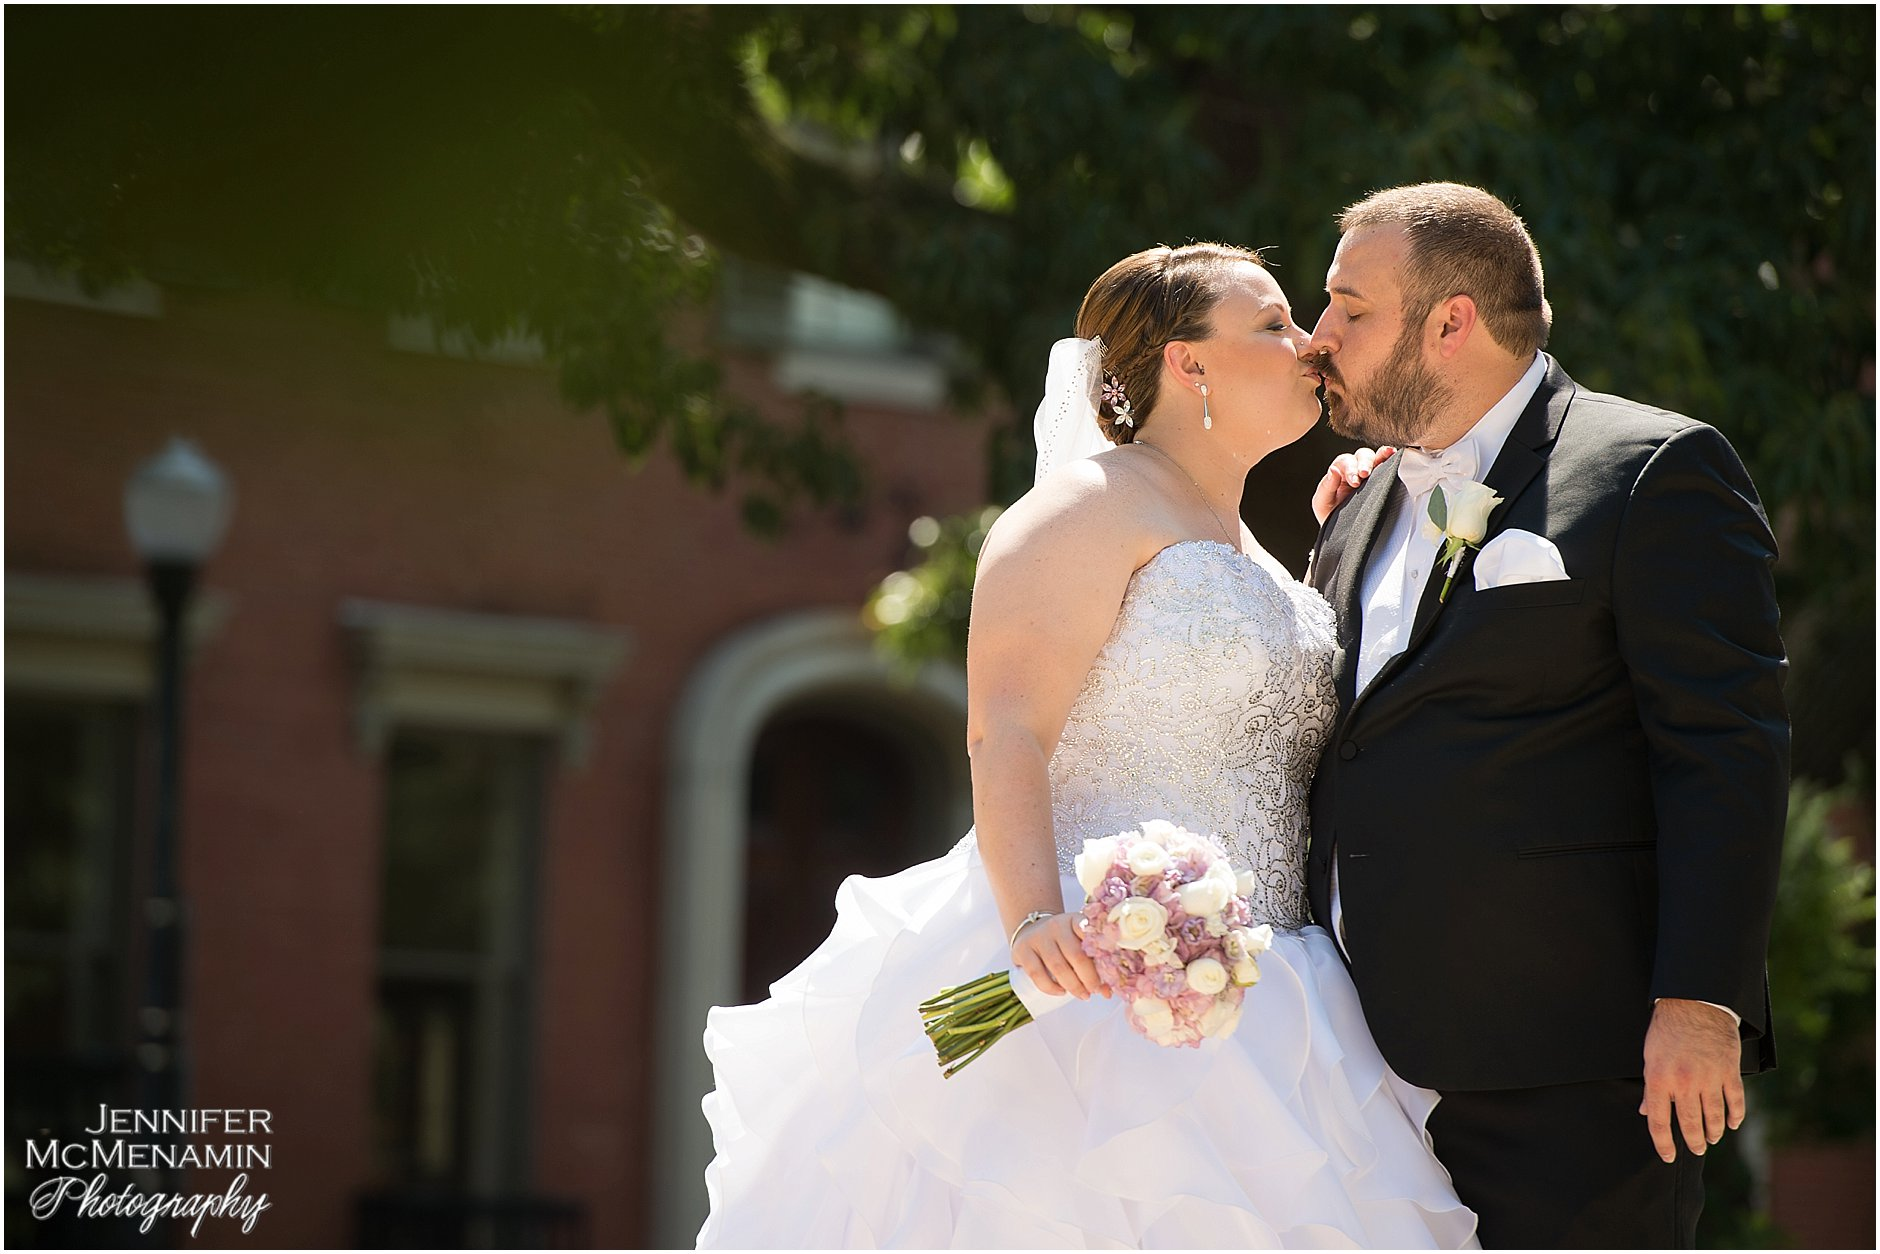 001-KinzlerShaull_01090_Jennifer-McMenamin-Photography-Peabody-Library-wedding